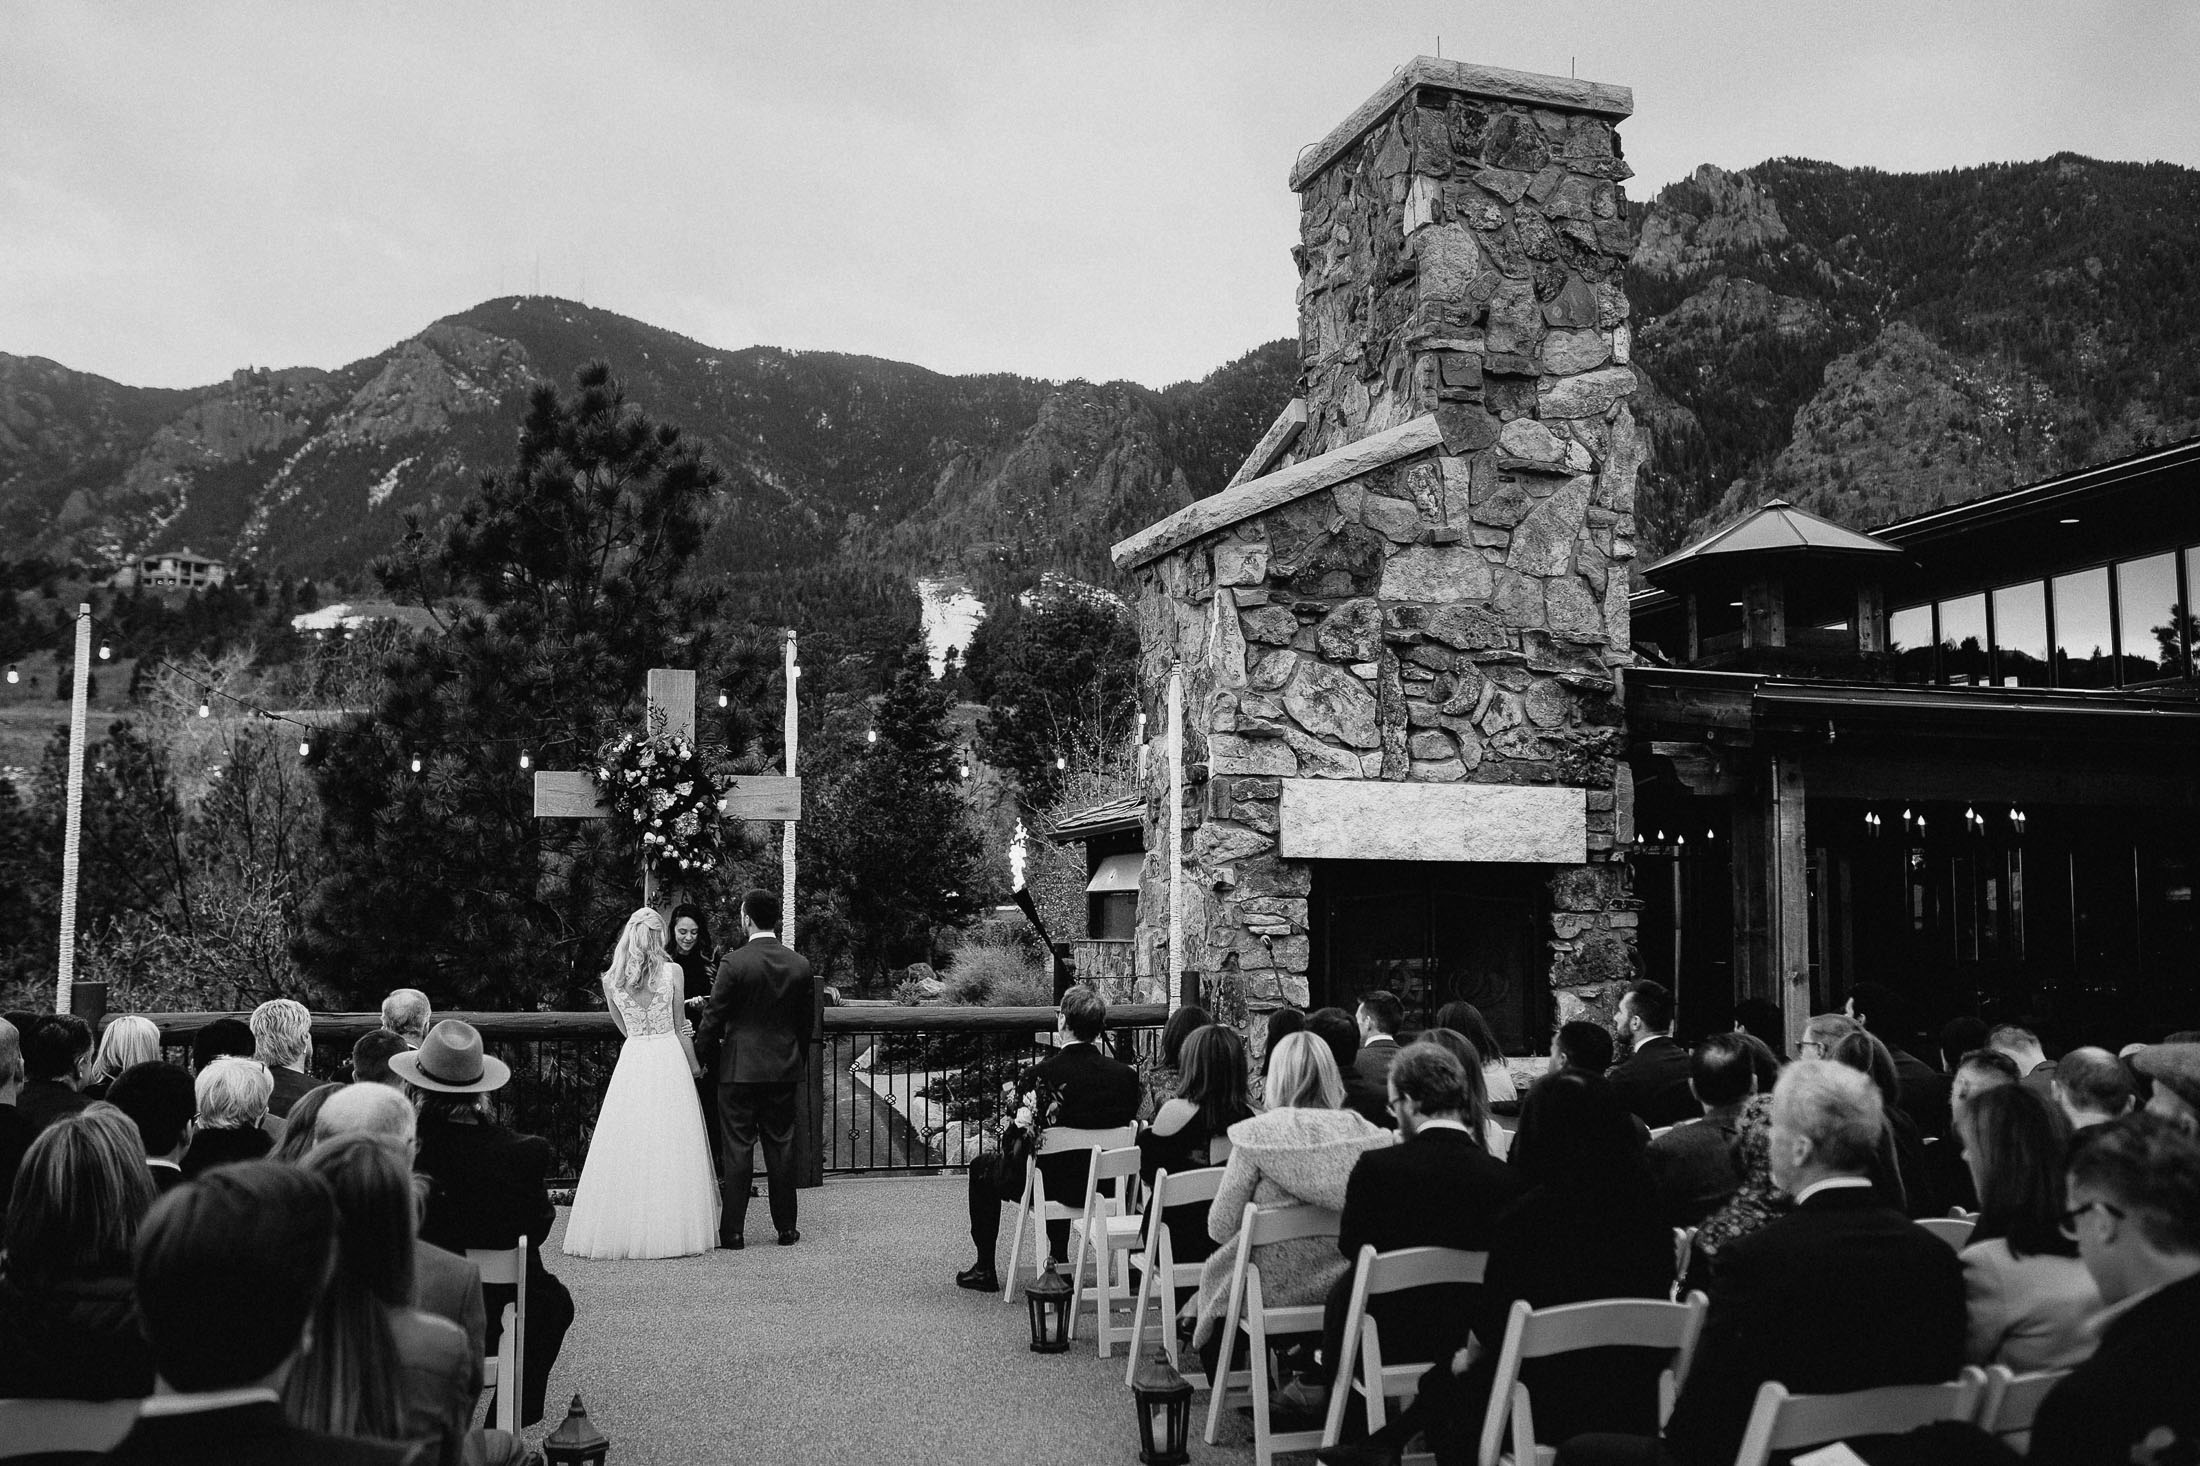 Black and white photograph of bride and groom standing at the altar during outdoor wedding ceremony at the Cheyenne Lodge.